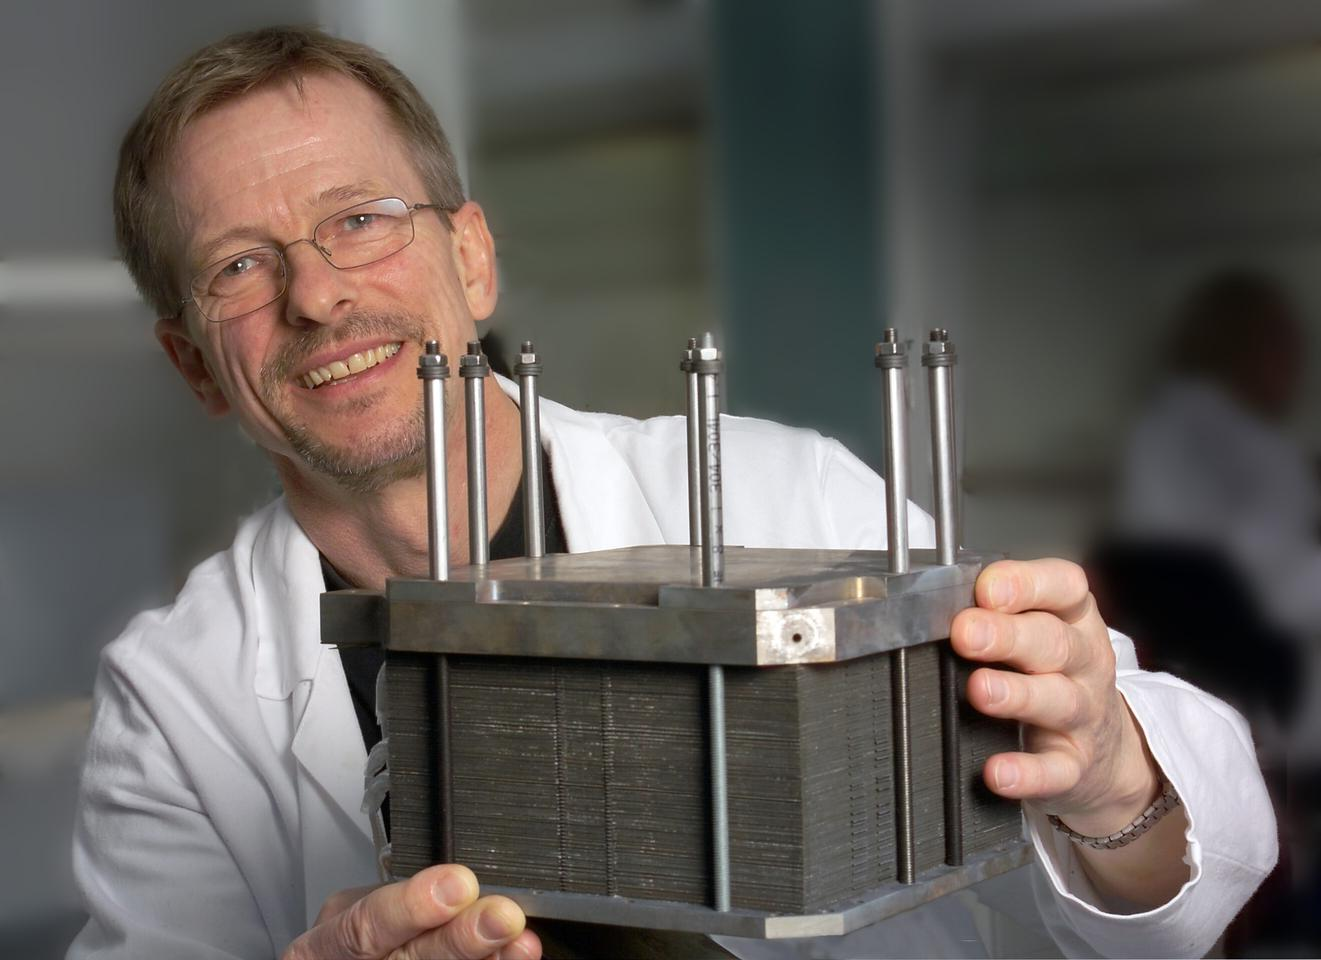 Danish company Dantherm Power has announced plans to test and release a highly efficient combined heat and power (CHP) plant designed for private homes (Photo: Topsoe Fuel Cell)